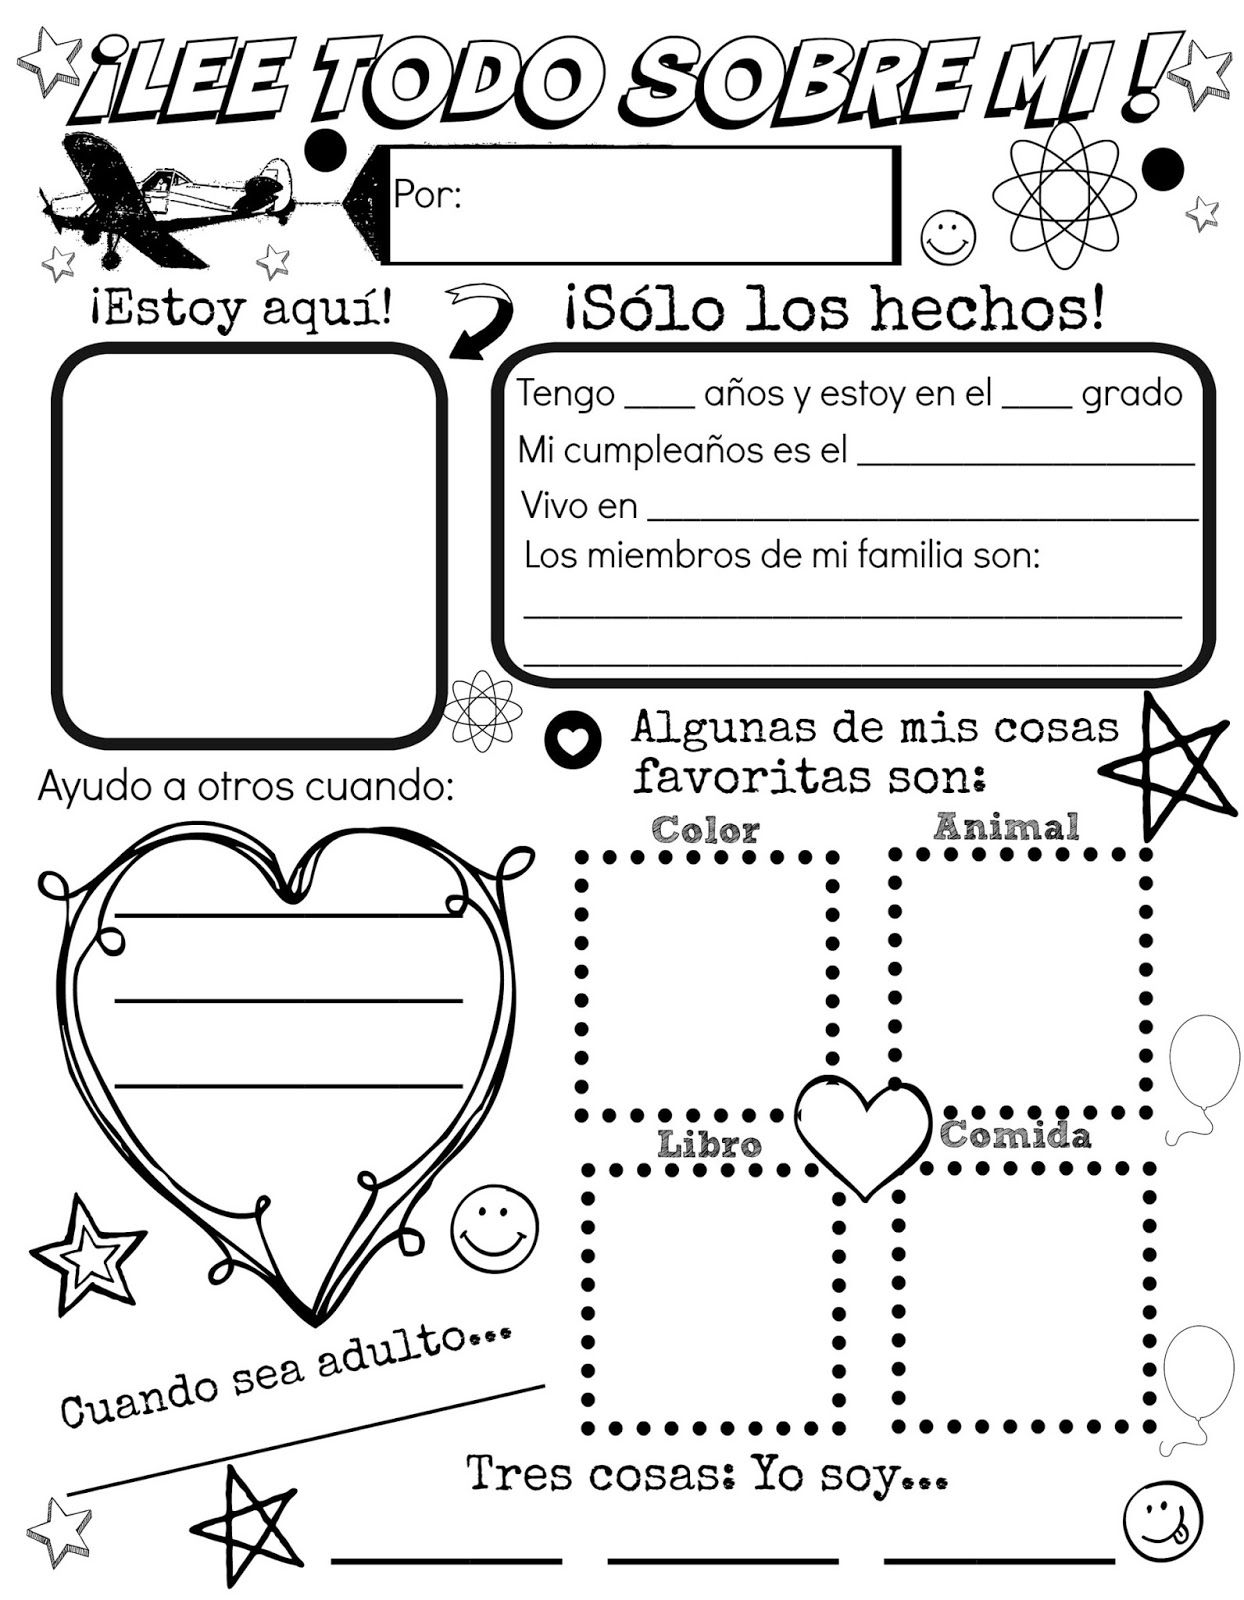 Worksheets Free Spanish Printable Worksheets discovering the world through my sons eyes all about me free spanish printable pinterest eye and f